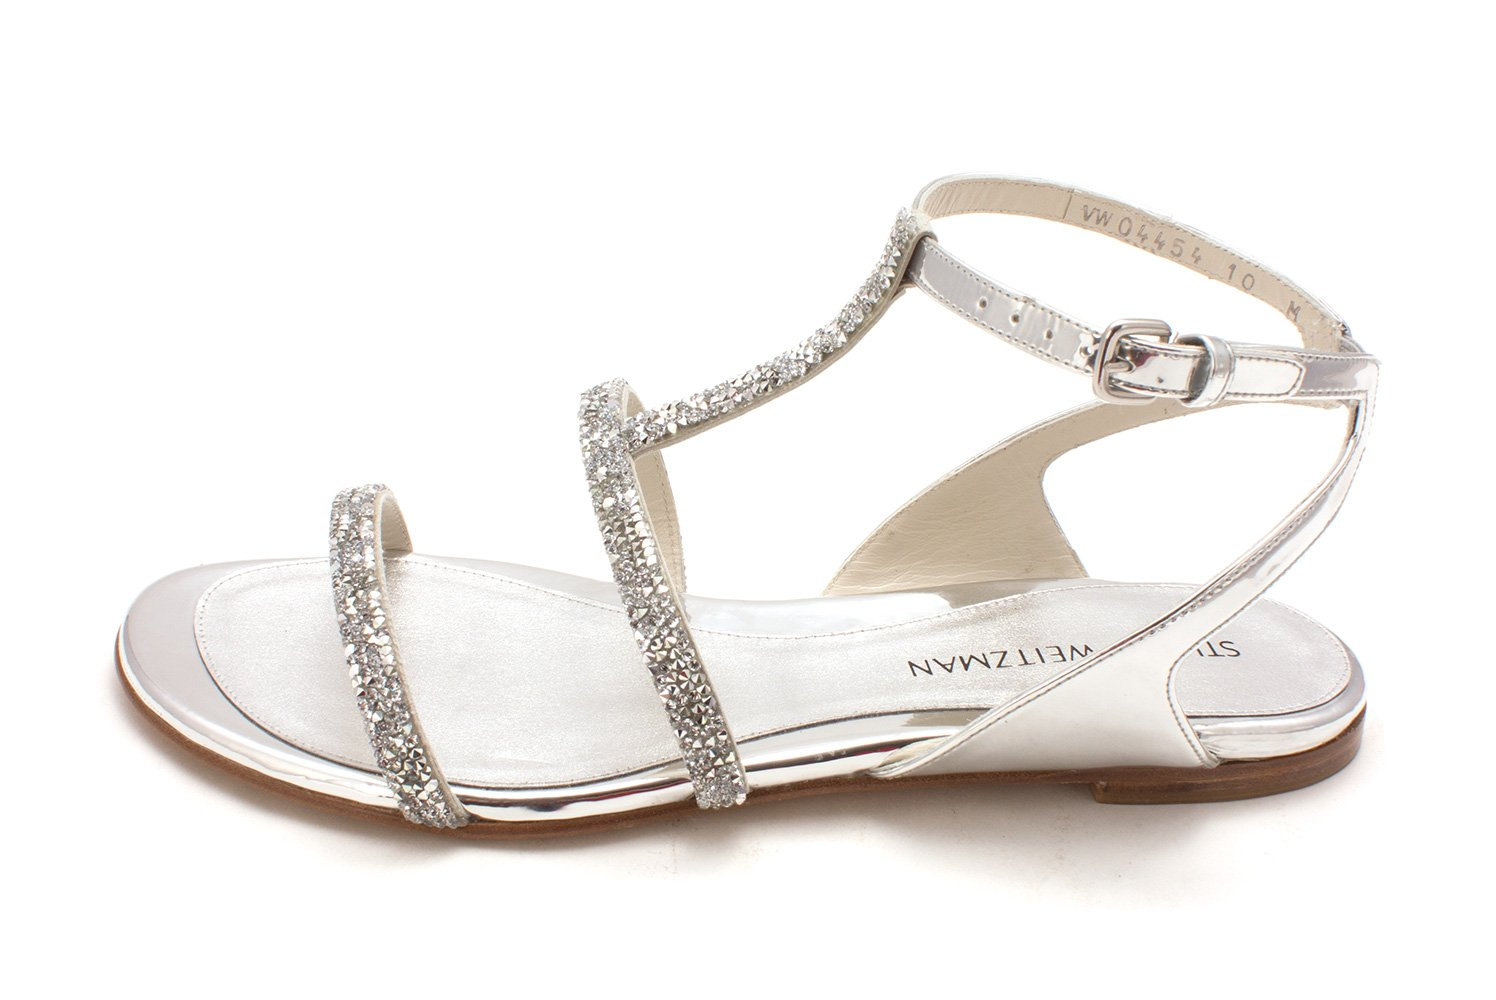 Stuart Weitzman Womens SweeTee Open Toe Special Occasion, Tin Glass, Size 10.0